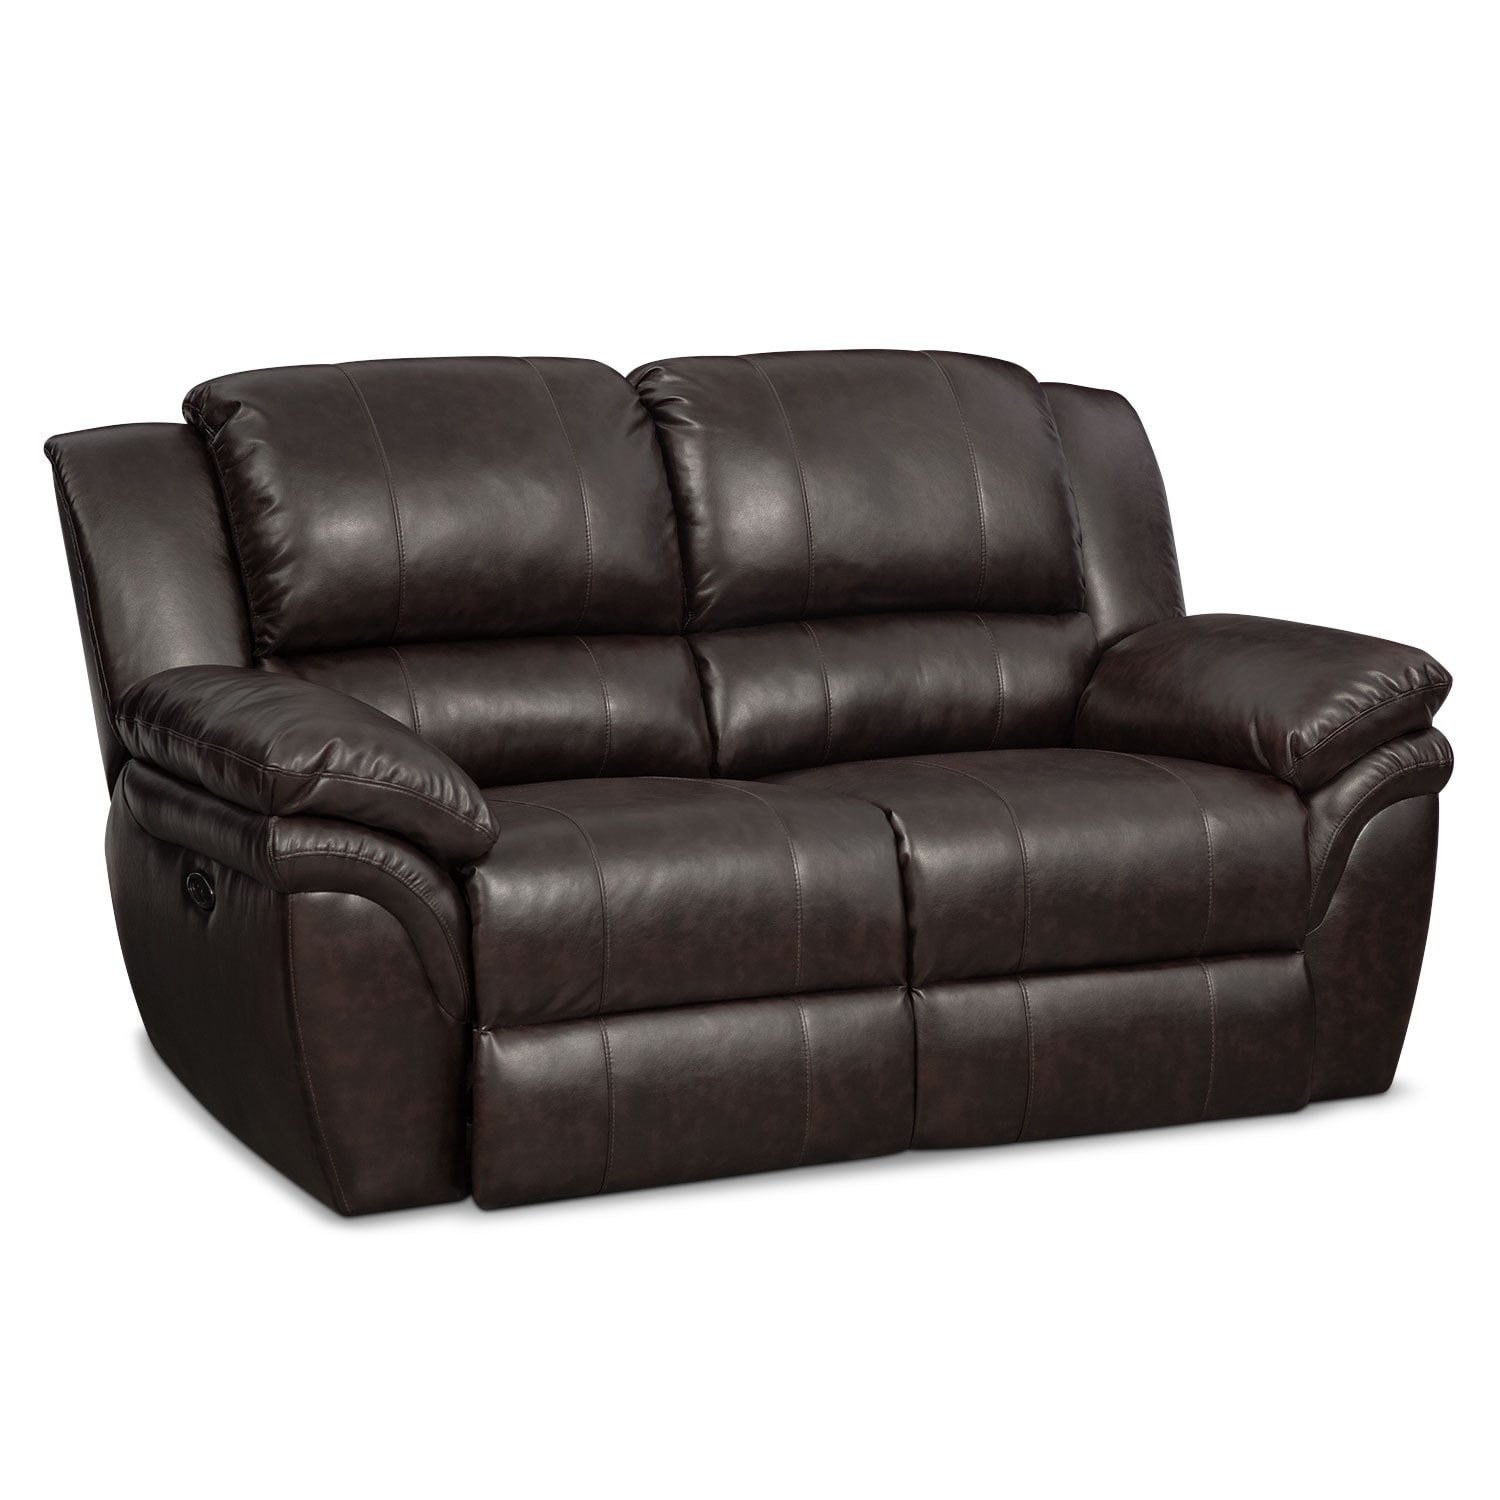 Living Room Furniture - Omni Brown Power Reclining Loveseat